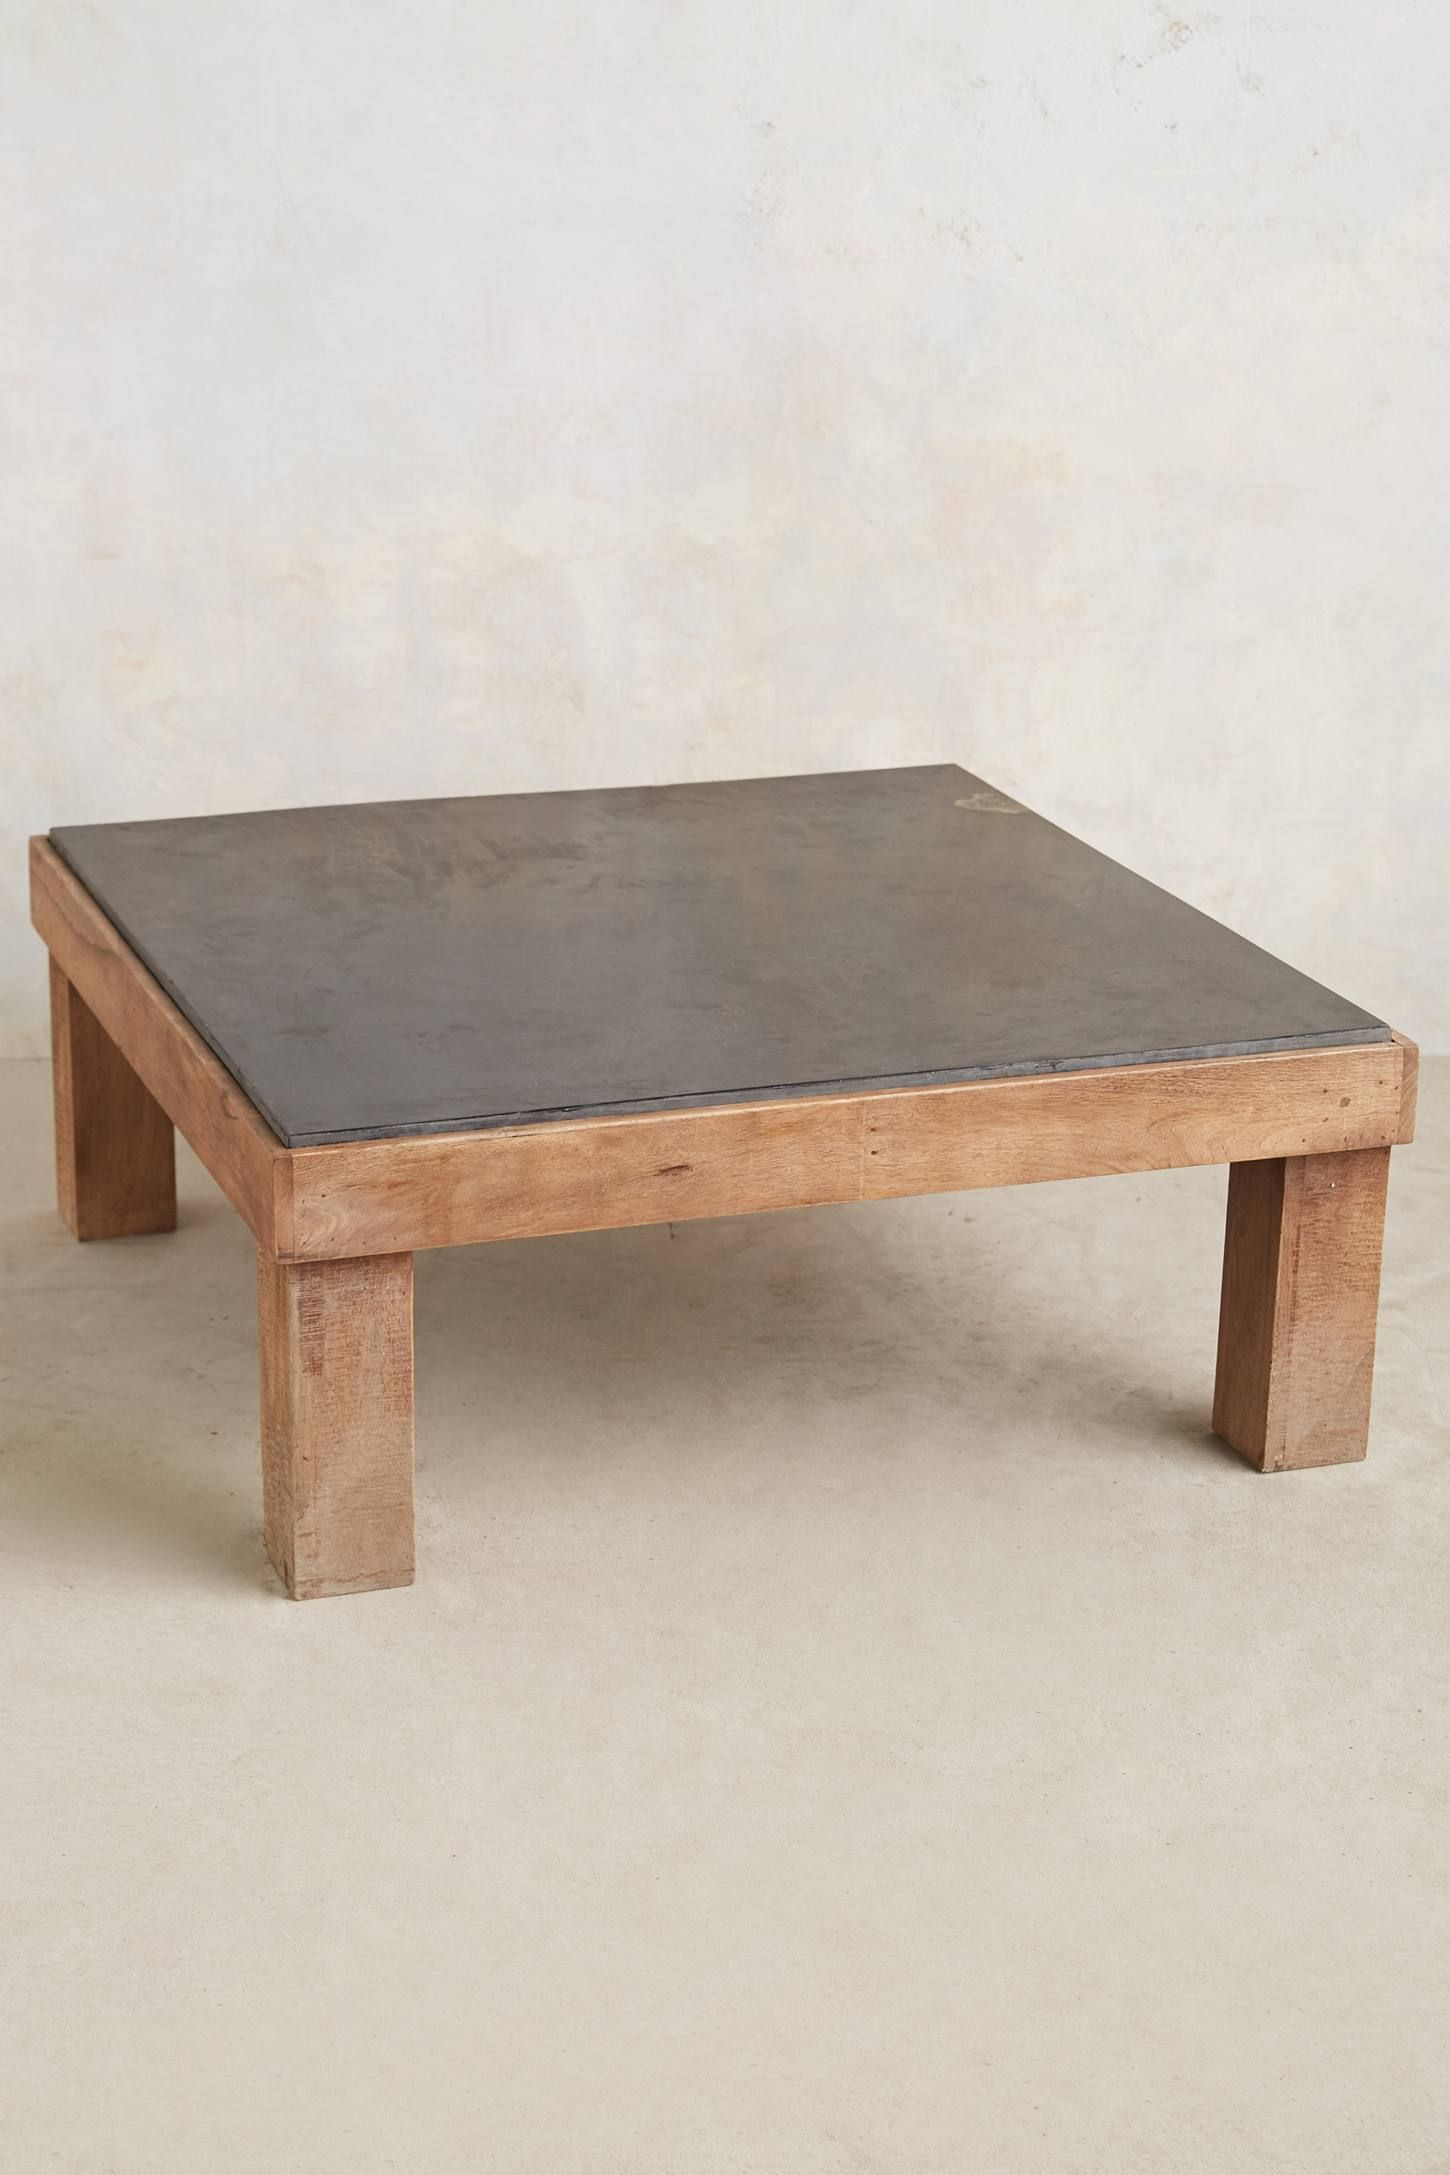 Slate Inset Coffee Table Coffee Table Home Coffee Tables Slate Coffee Table [ 2175 x 1450 Pixel ]